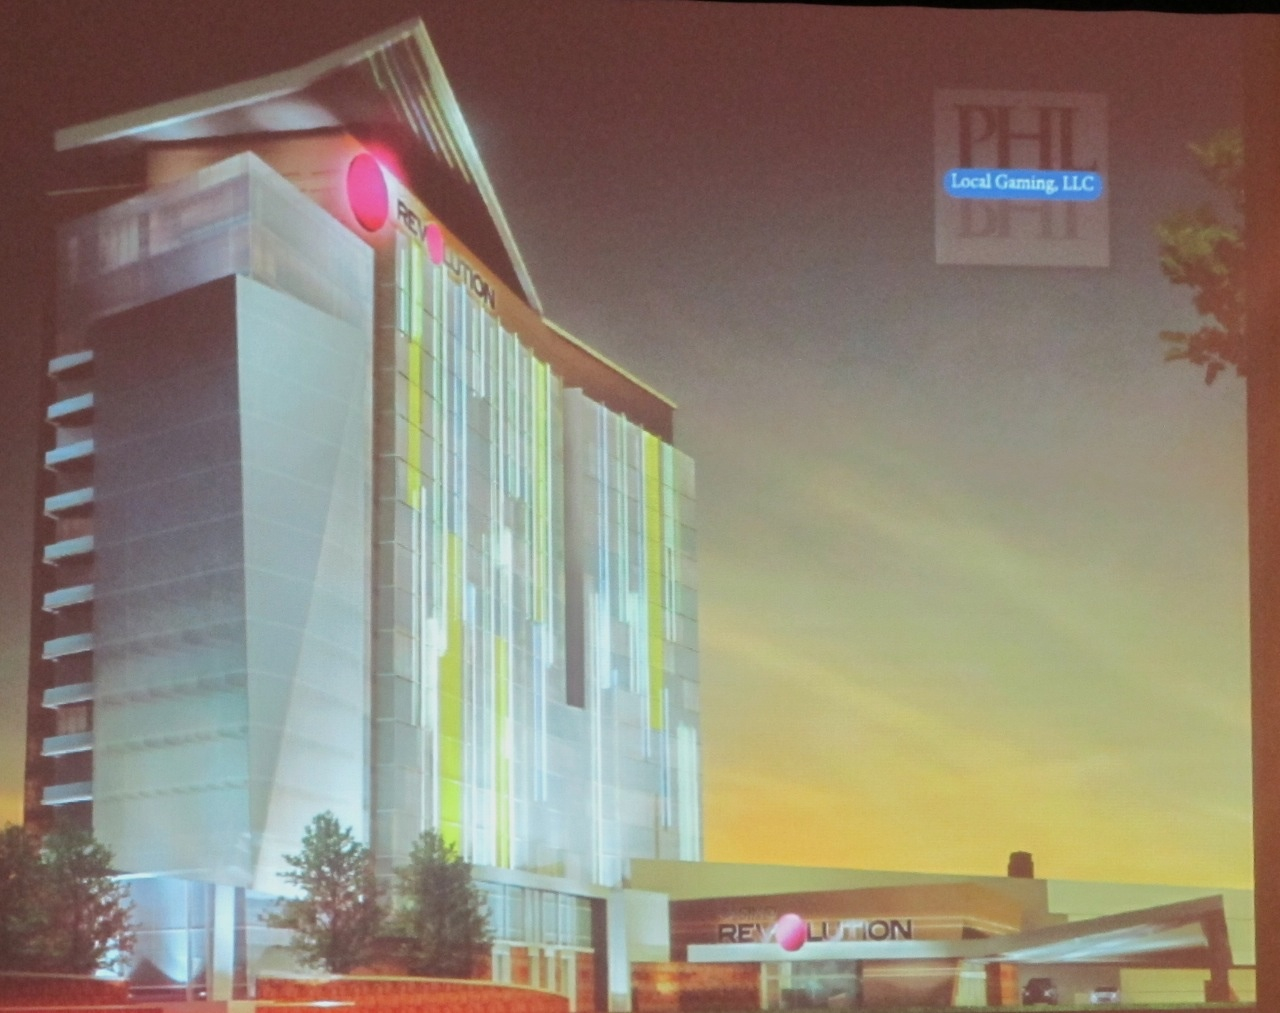 PHL Local Gaming, LLC, proposing Casino Revolution at 3333 South Front Street.